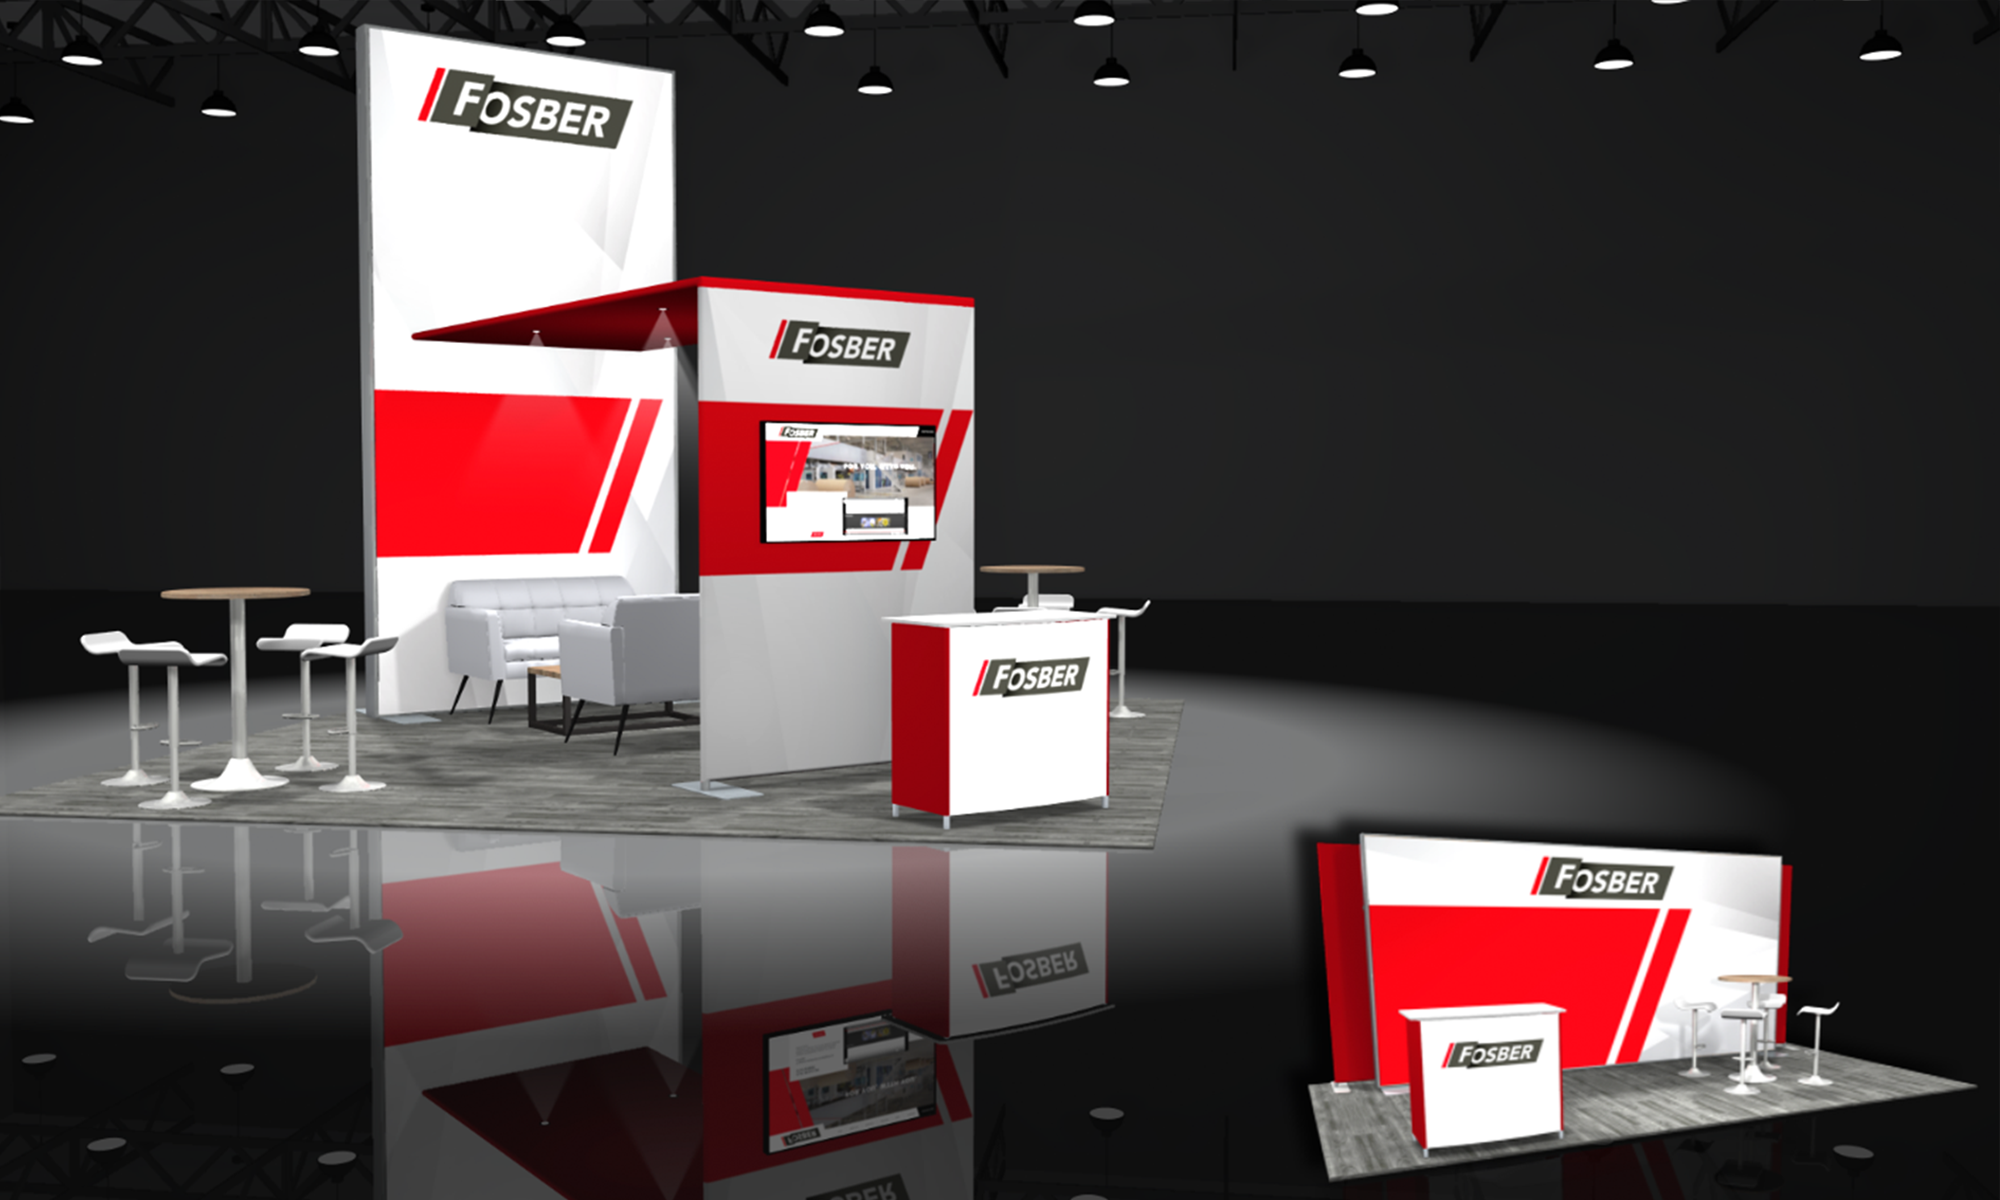 modular 20x20 trade show displays and 10x20 inline booth